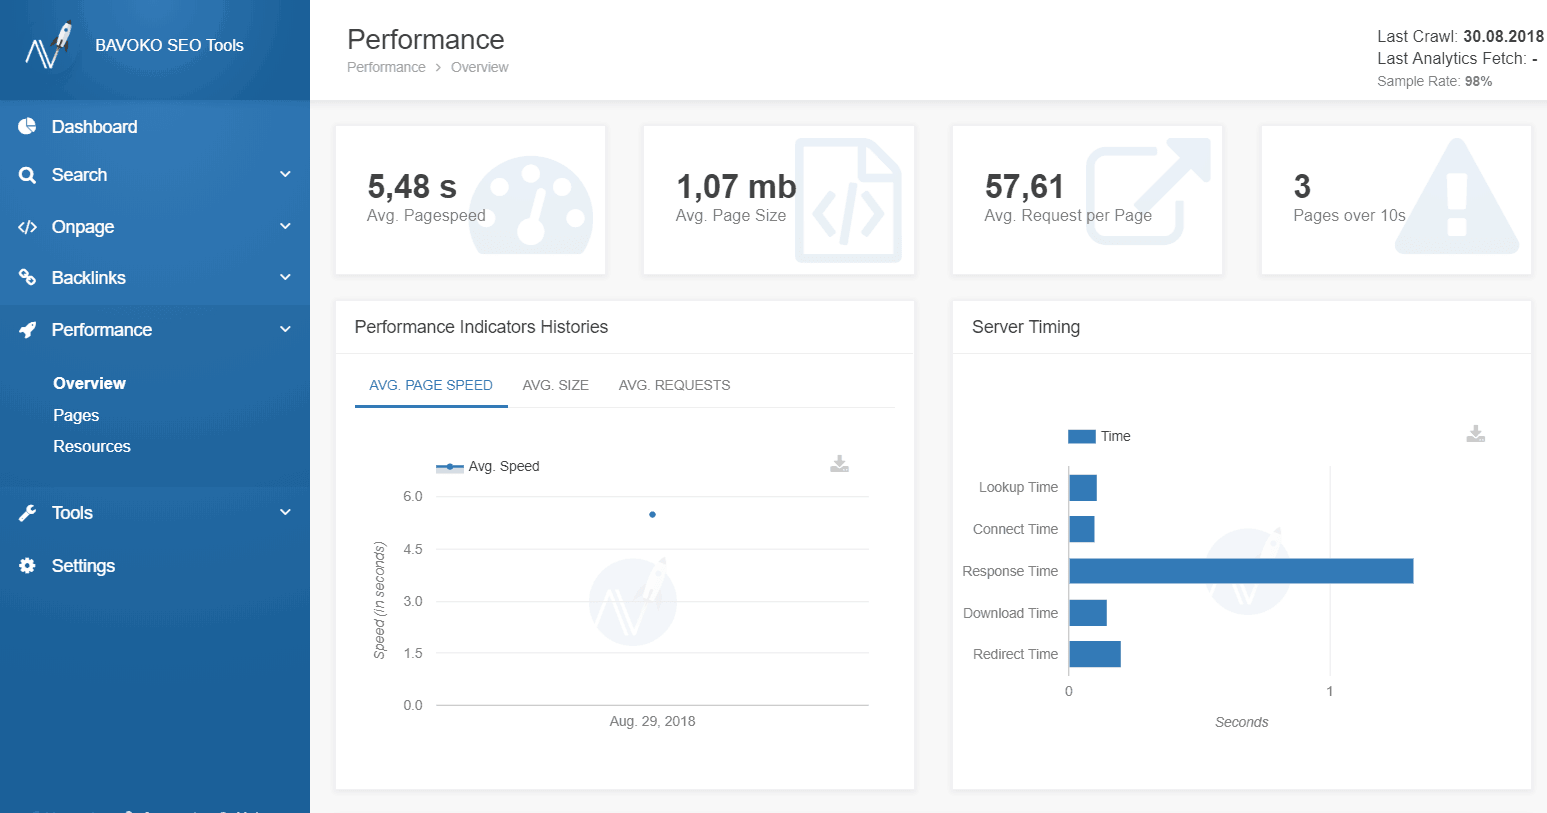 Performance Analysis in BAVOKO SEO Tools